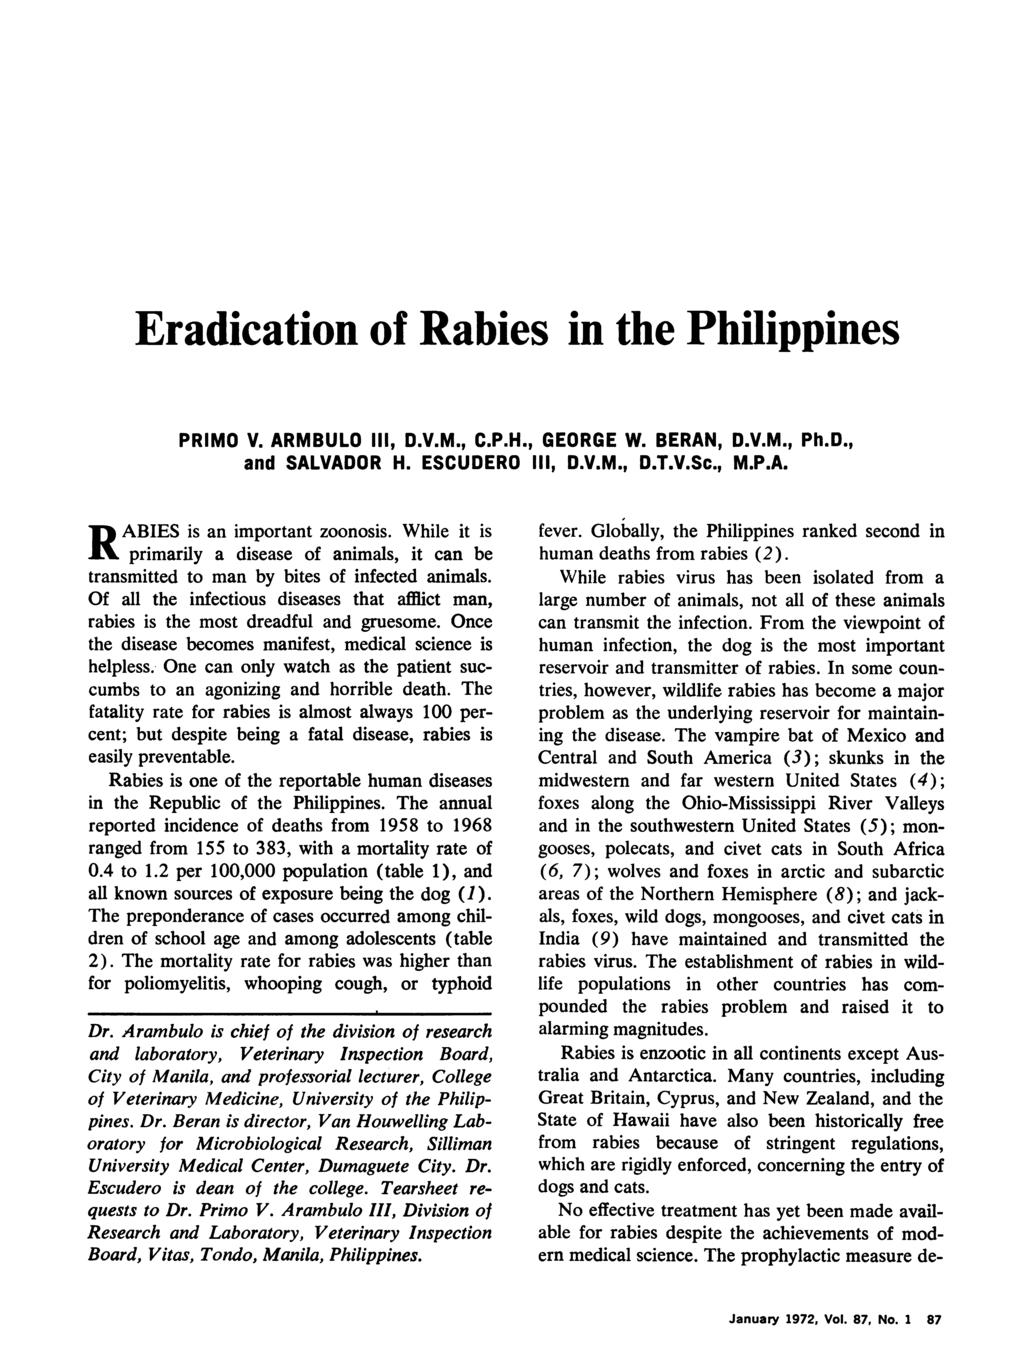 Eradication of Rabies in the Philippines PRIMO V. ARMBULO 111, D.V.M., C.P.H., GEORGE W. BERAN, D.V.M., Ph.D., and SALVADOR H. ESCUDERO III, D.V.M., D.T.V.Sc., M.P.A. RABIES is an important zoonosis.